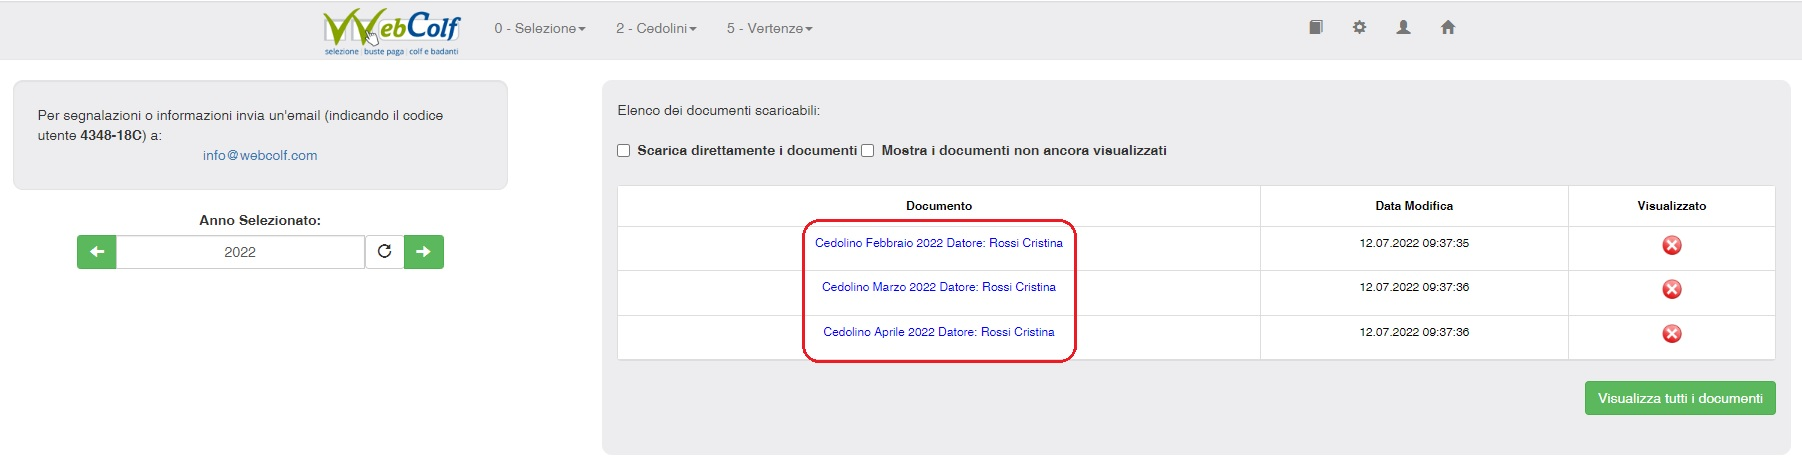 busta paga colf documenti scaricabili collaboratore home.JPG